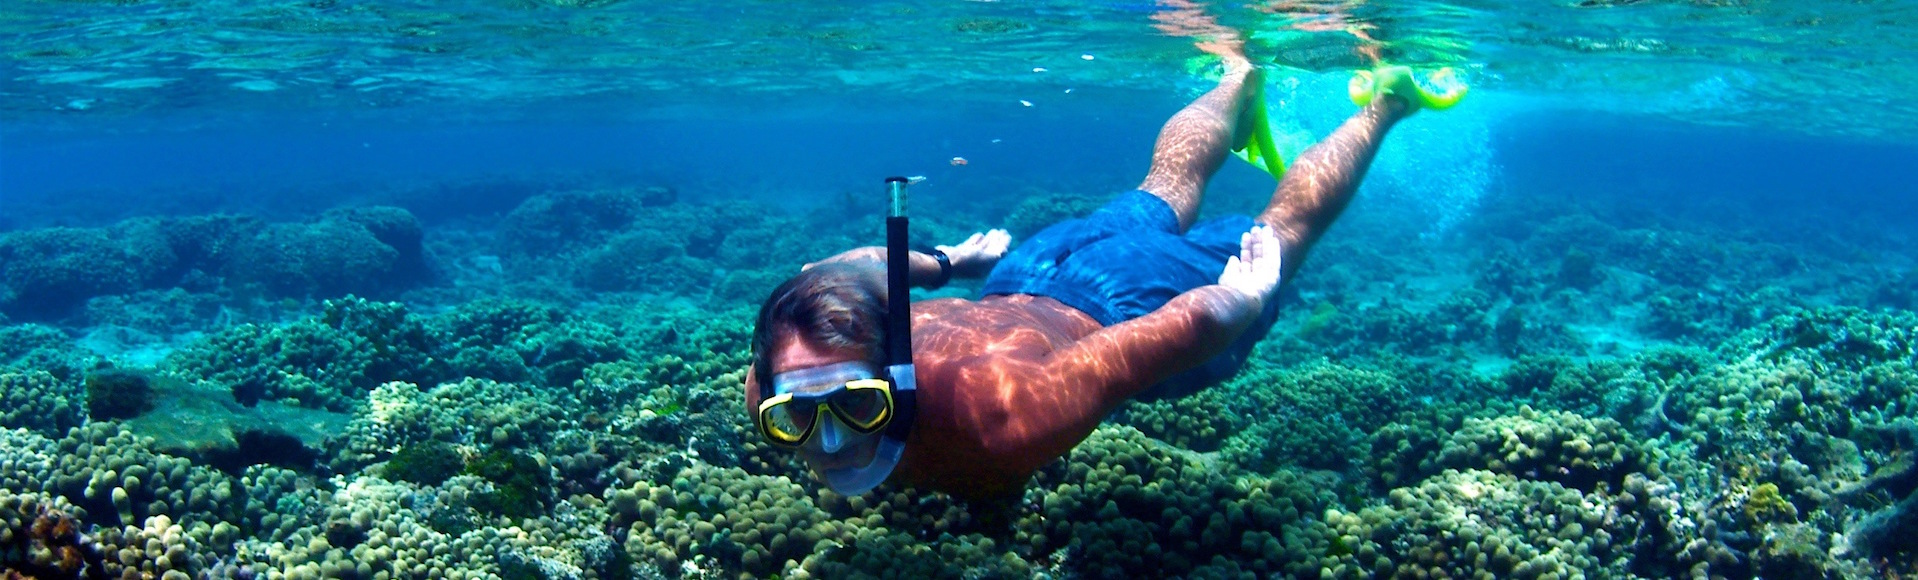 Snorkel Private Charters